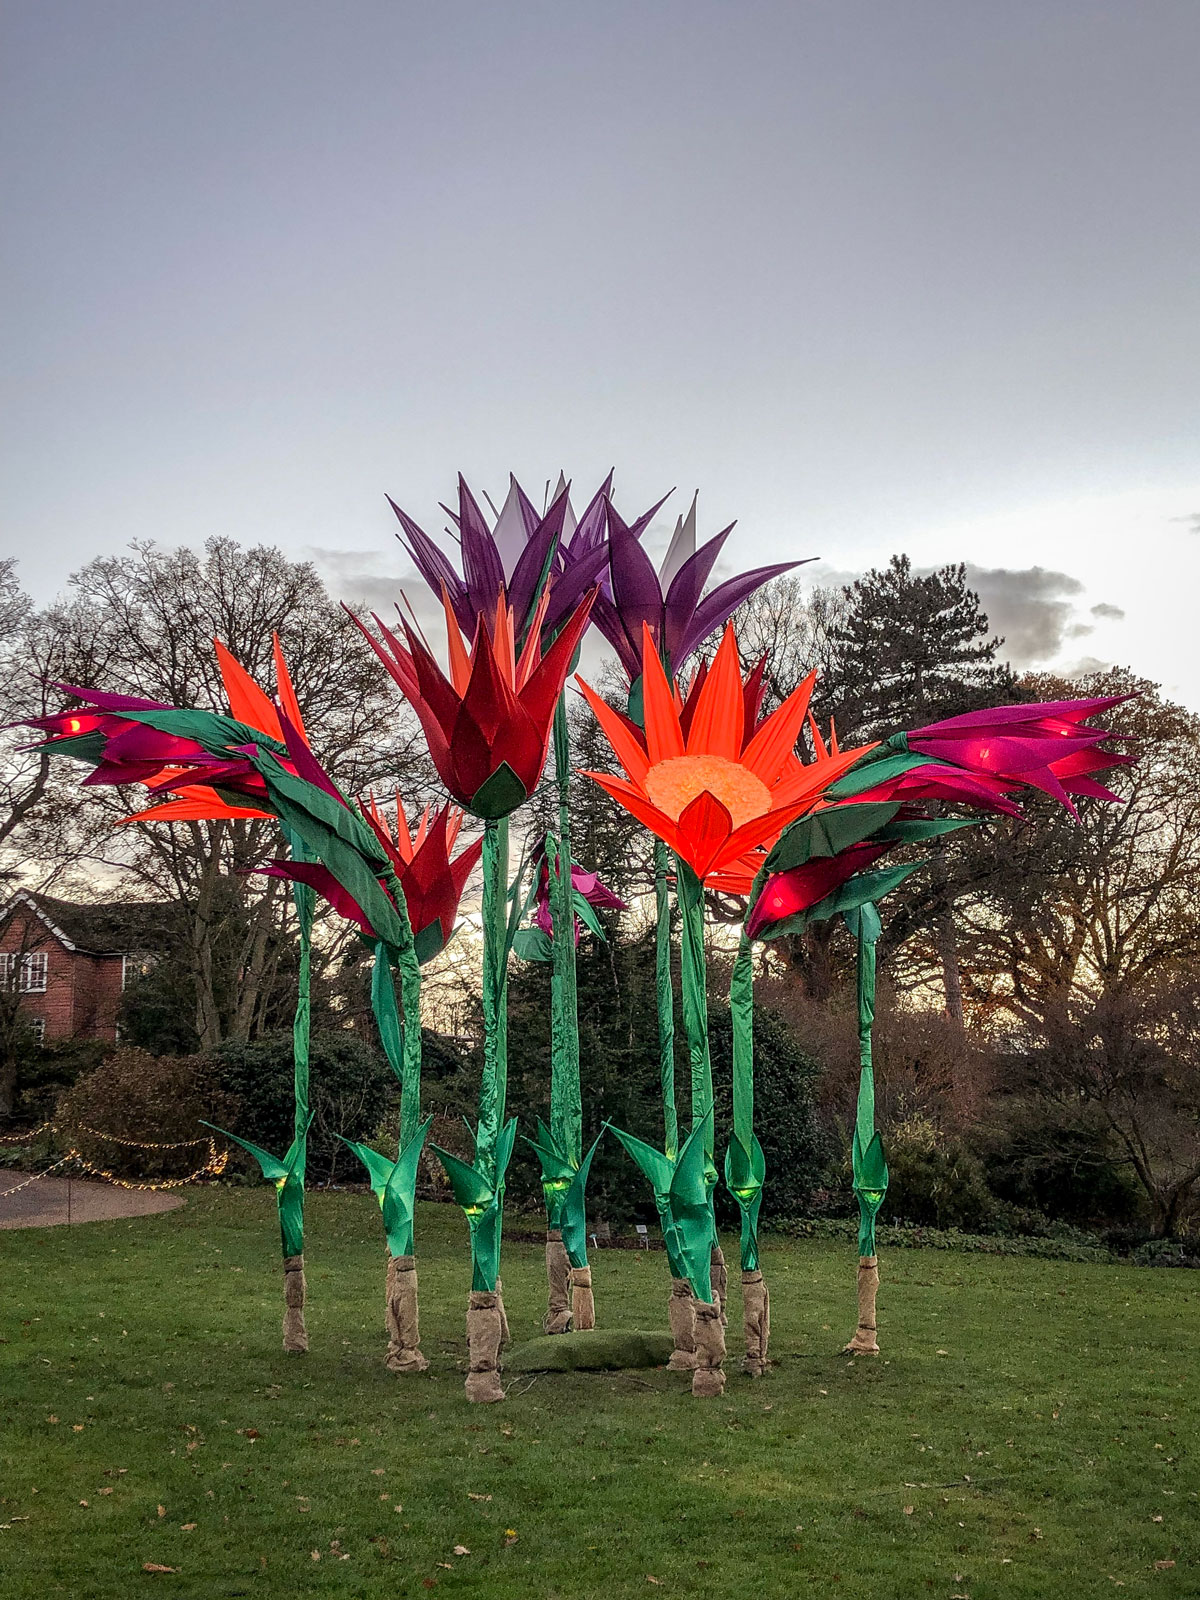 RHS Wisley Glow 2018 illuminated flowers during day